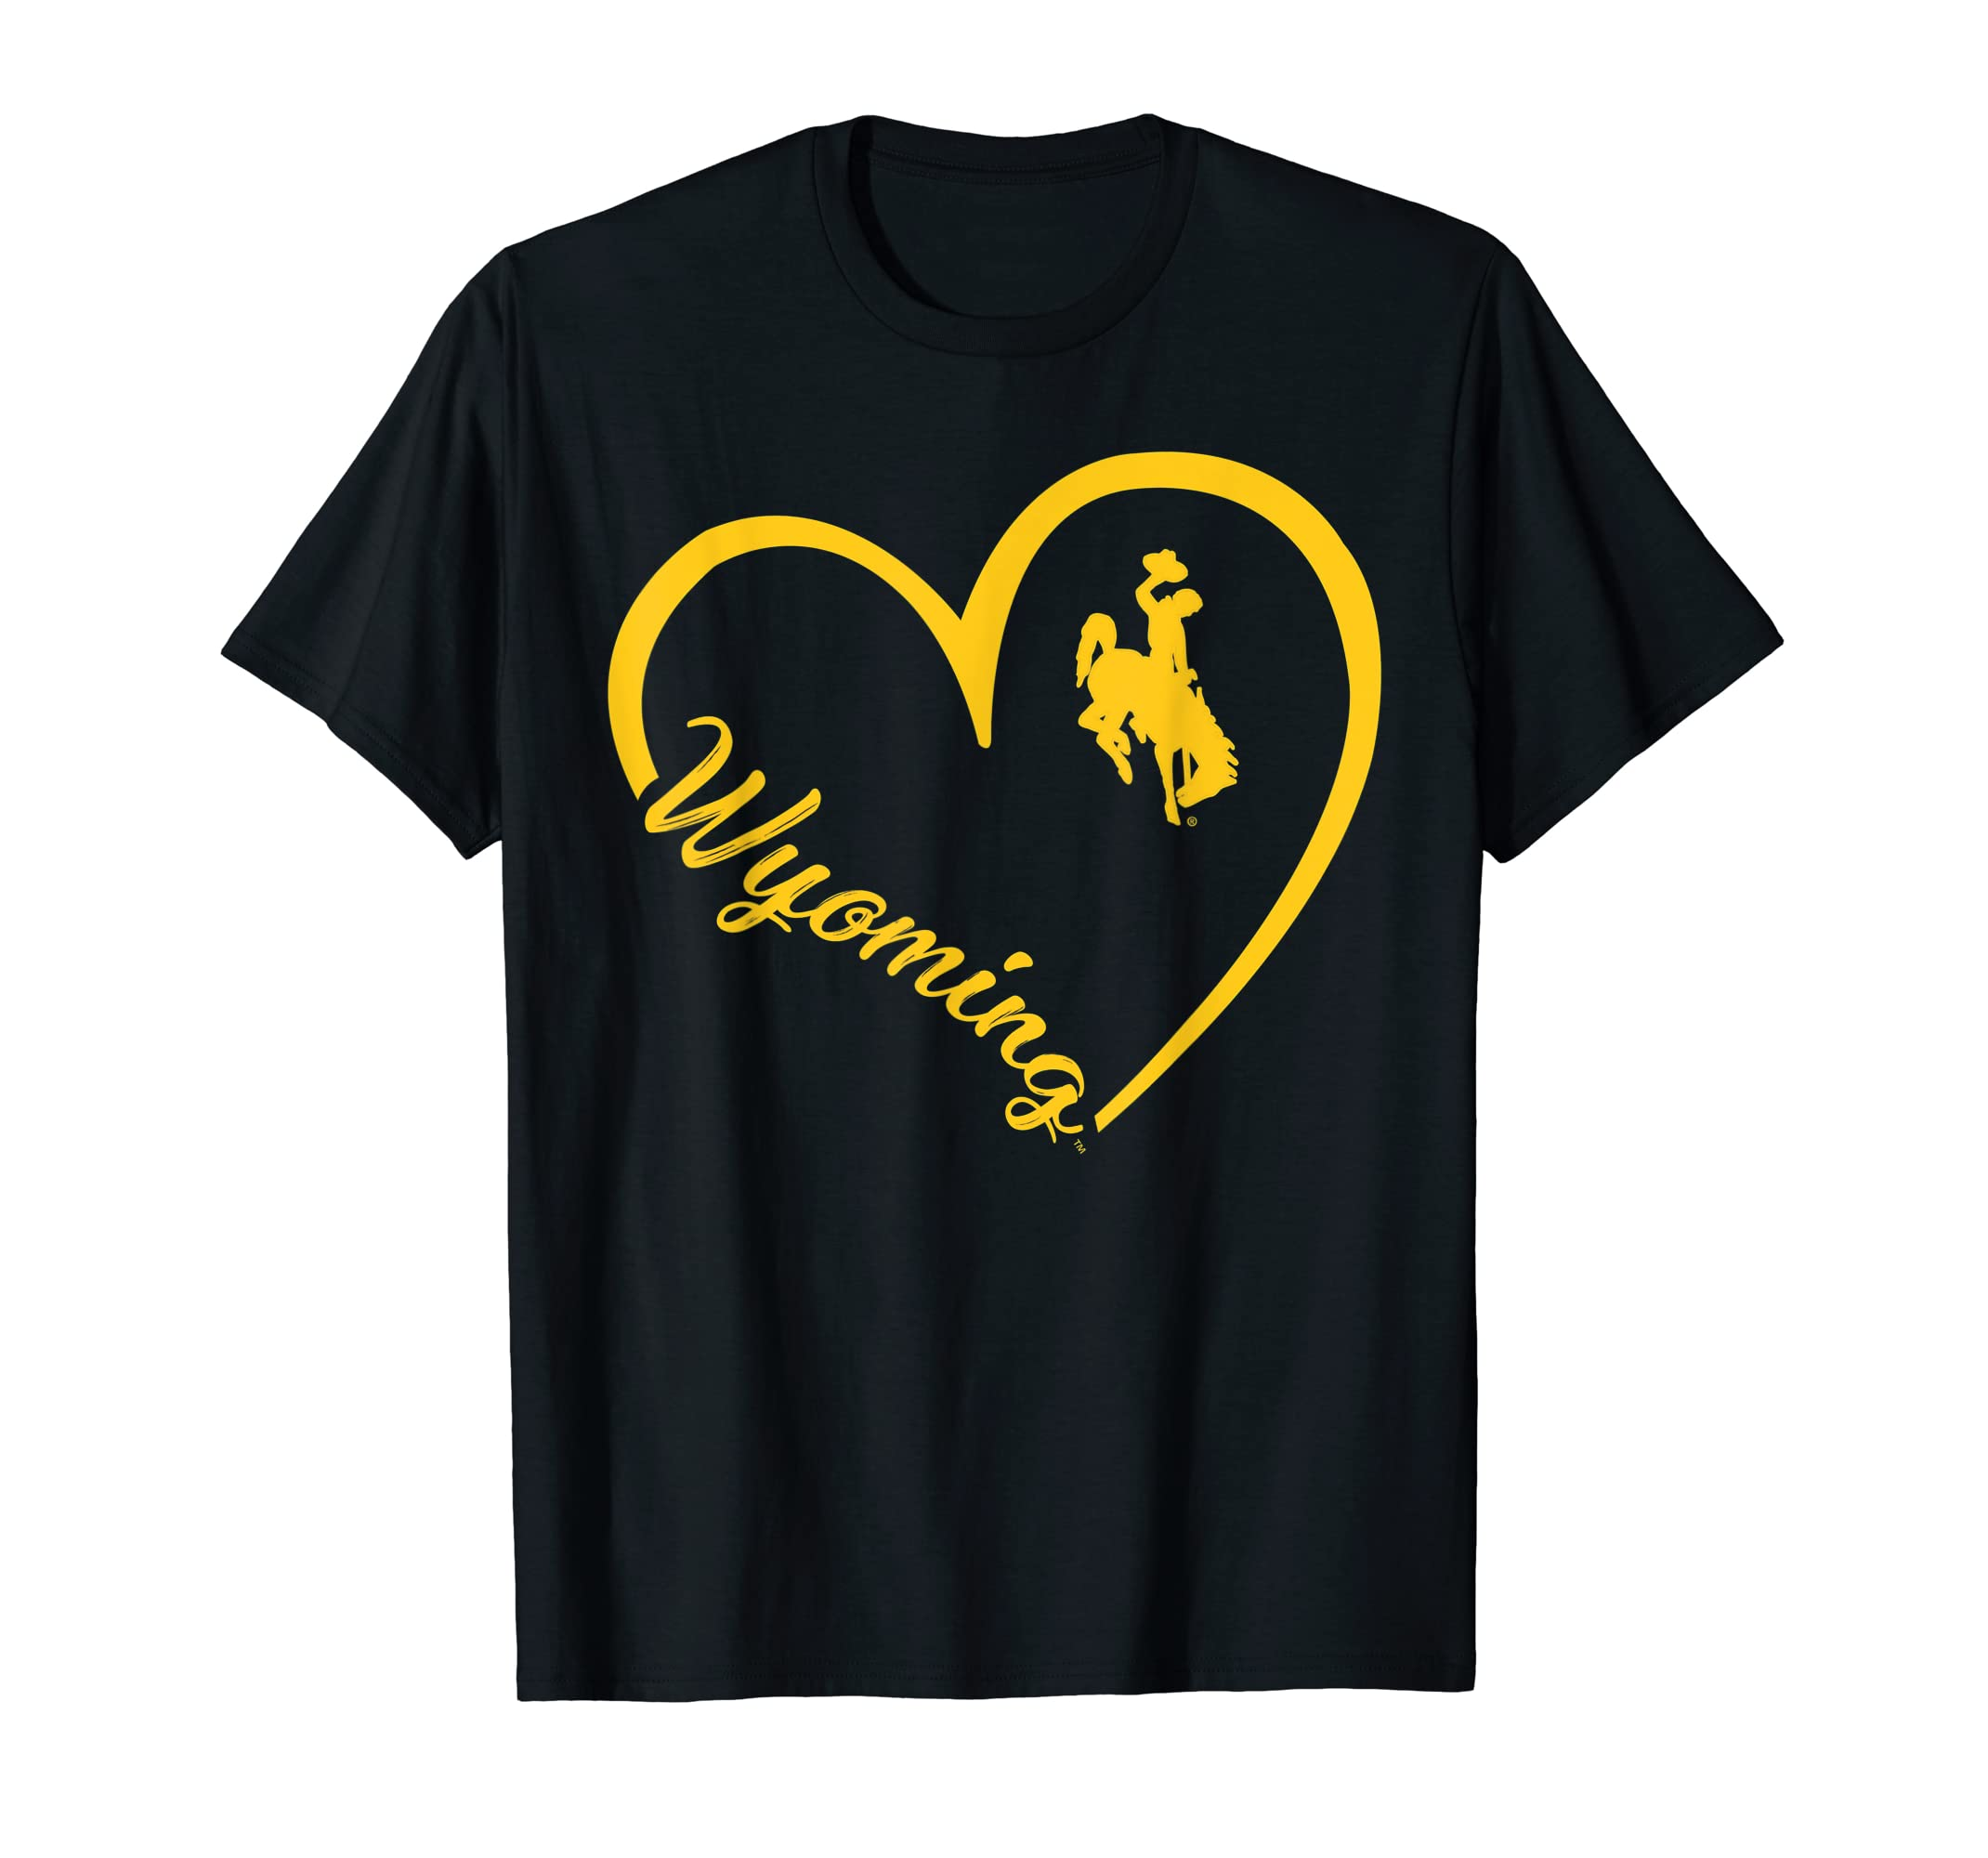 Wyoming Cowboys Heart Team Name T-Shirt - Apparel-Men's T-Shirt-Black